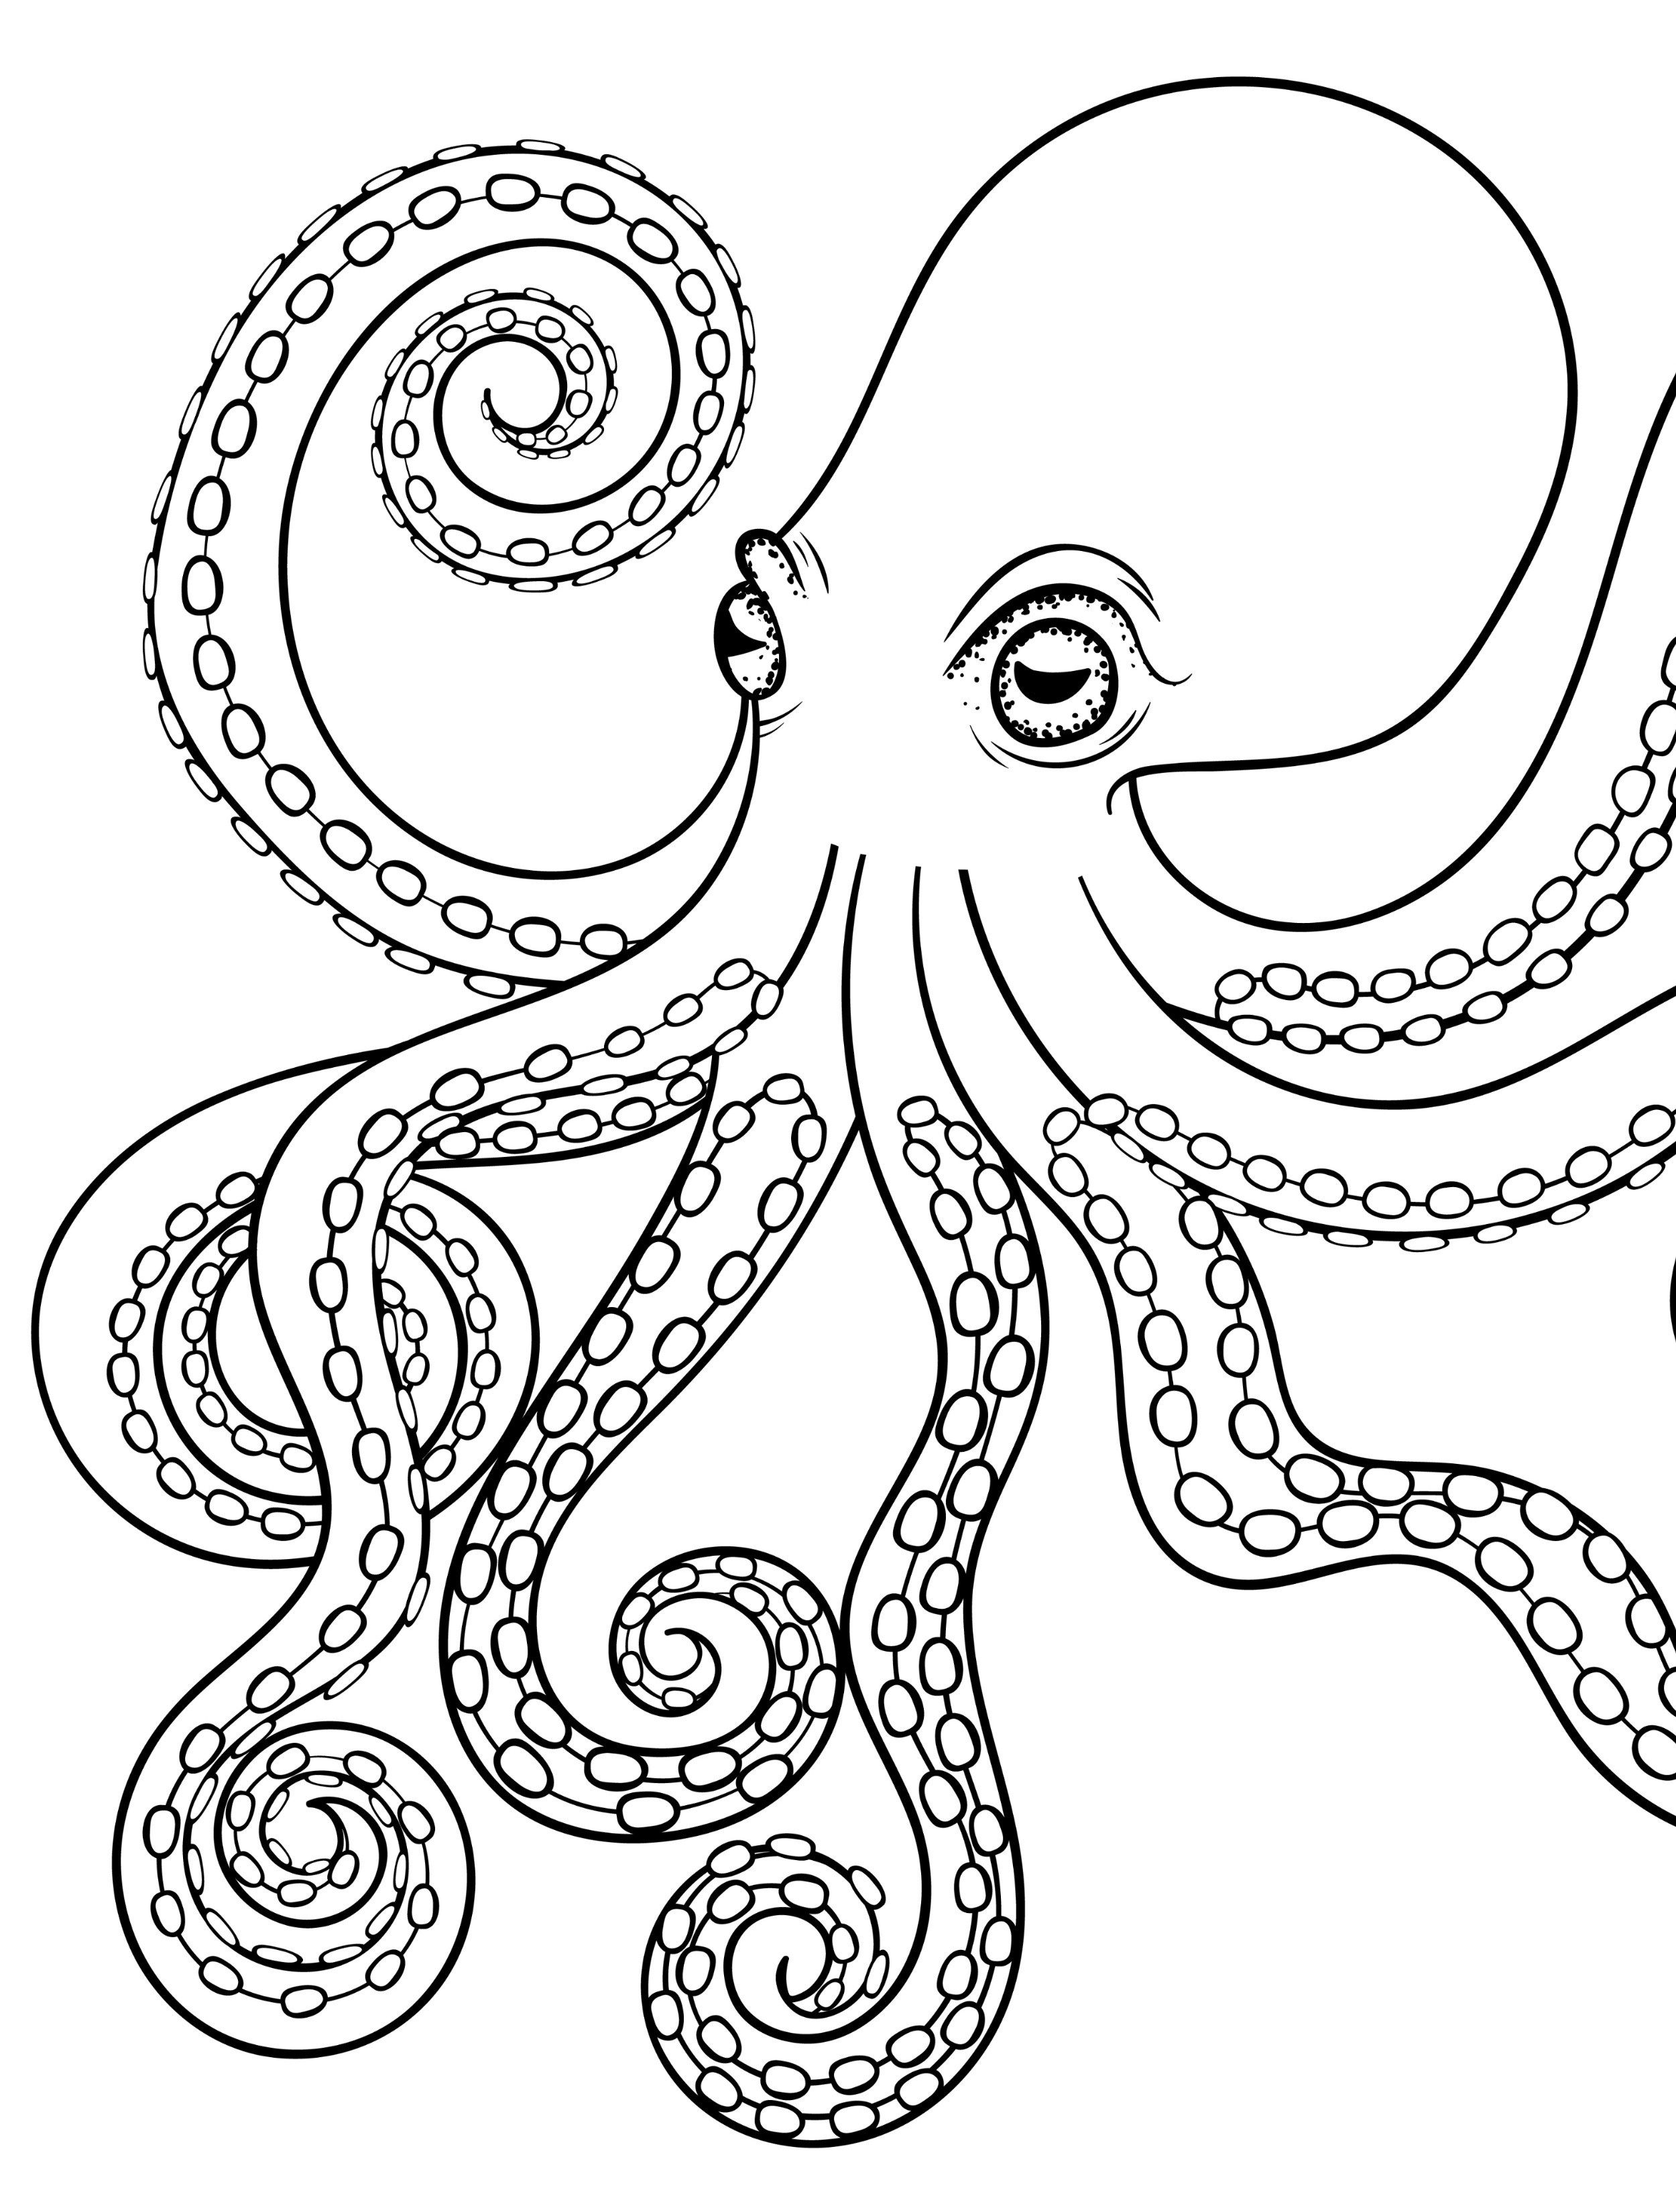 octopus adult coloring page for adults | Sea/Ocean | Pinterest ...